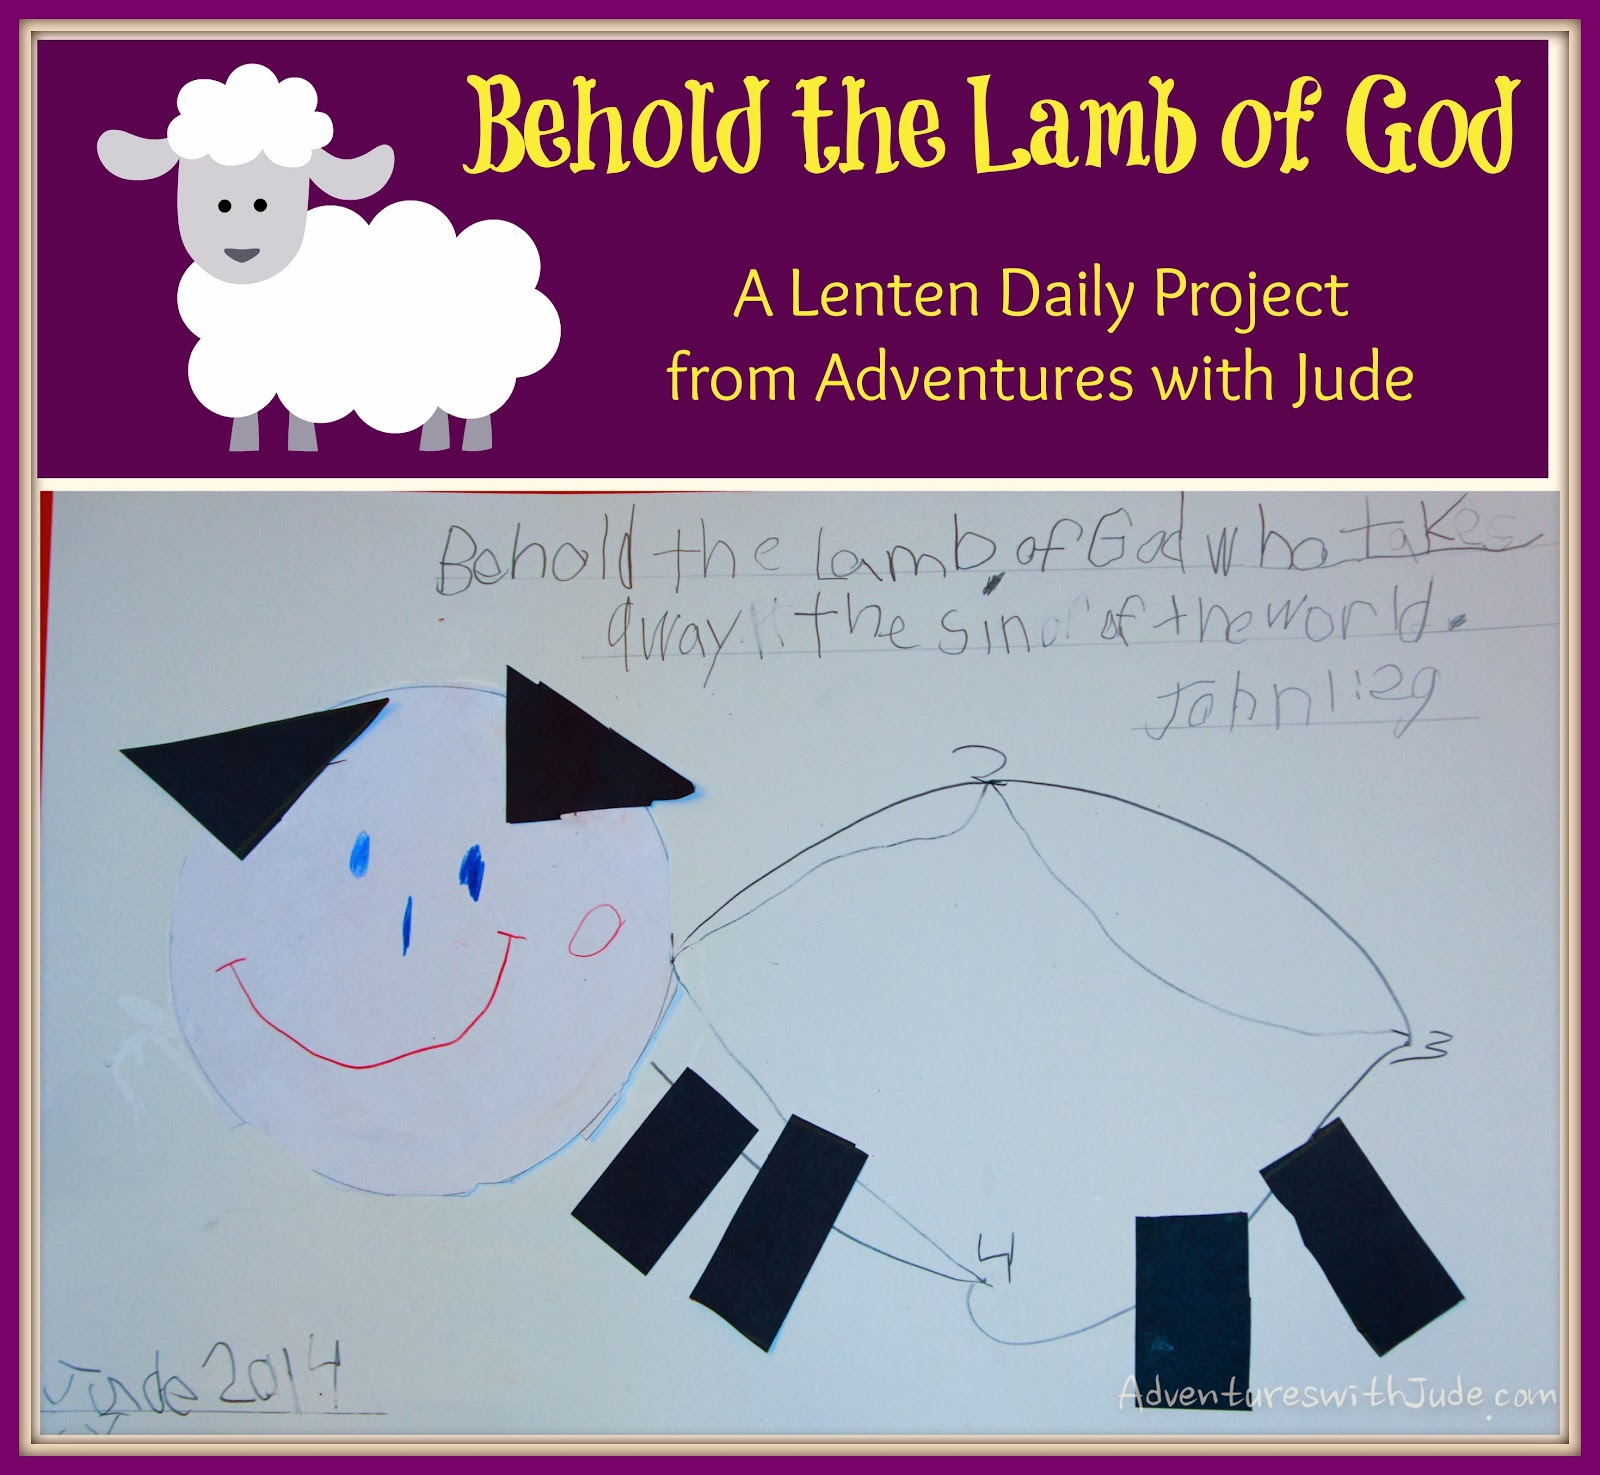 Behold the Lamb of God - A Lenten Daily Project